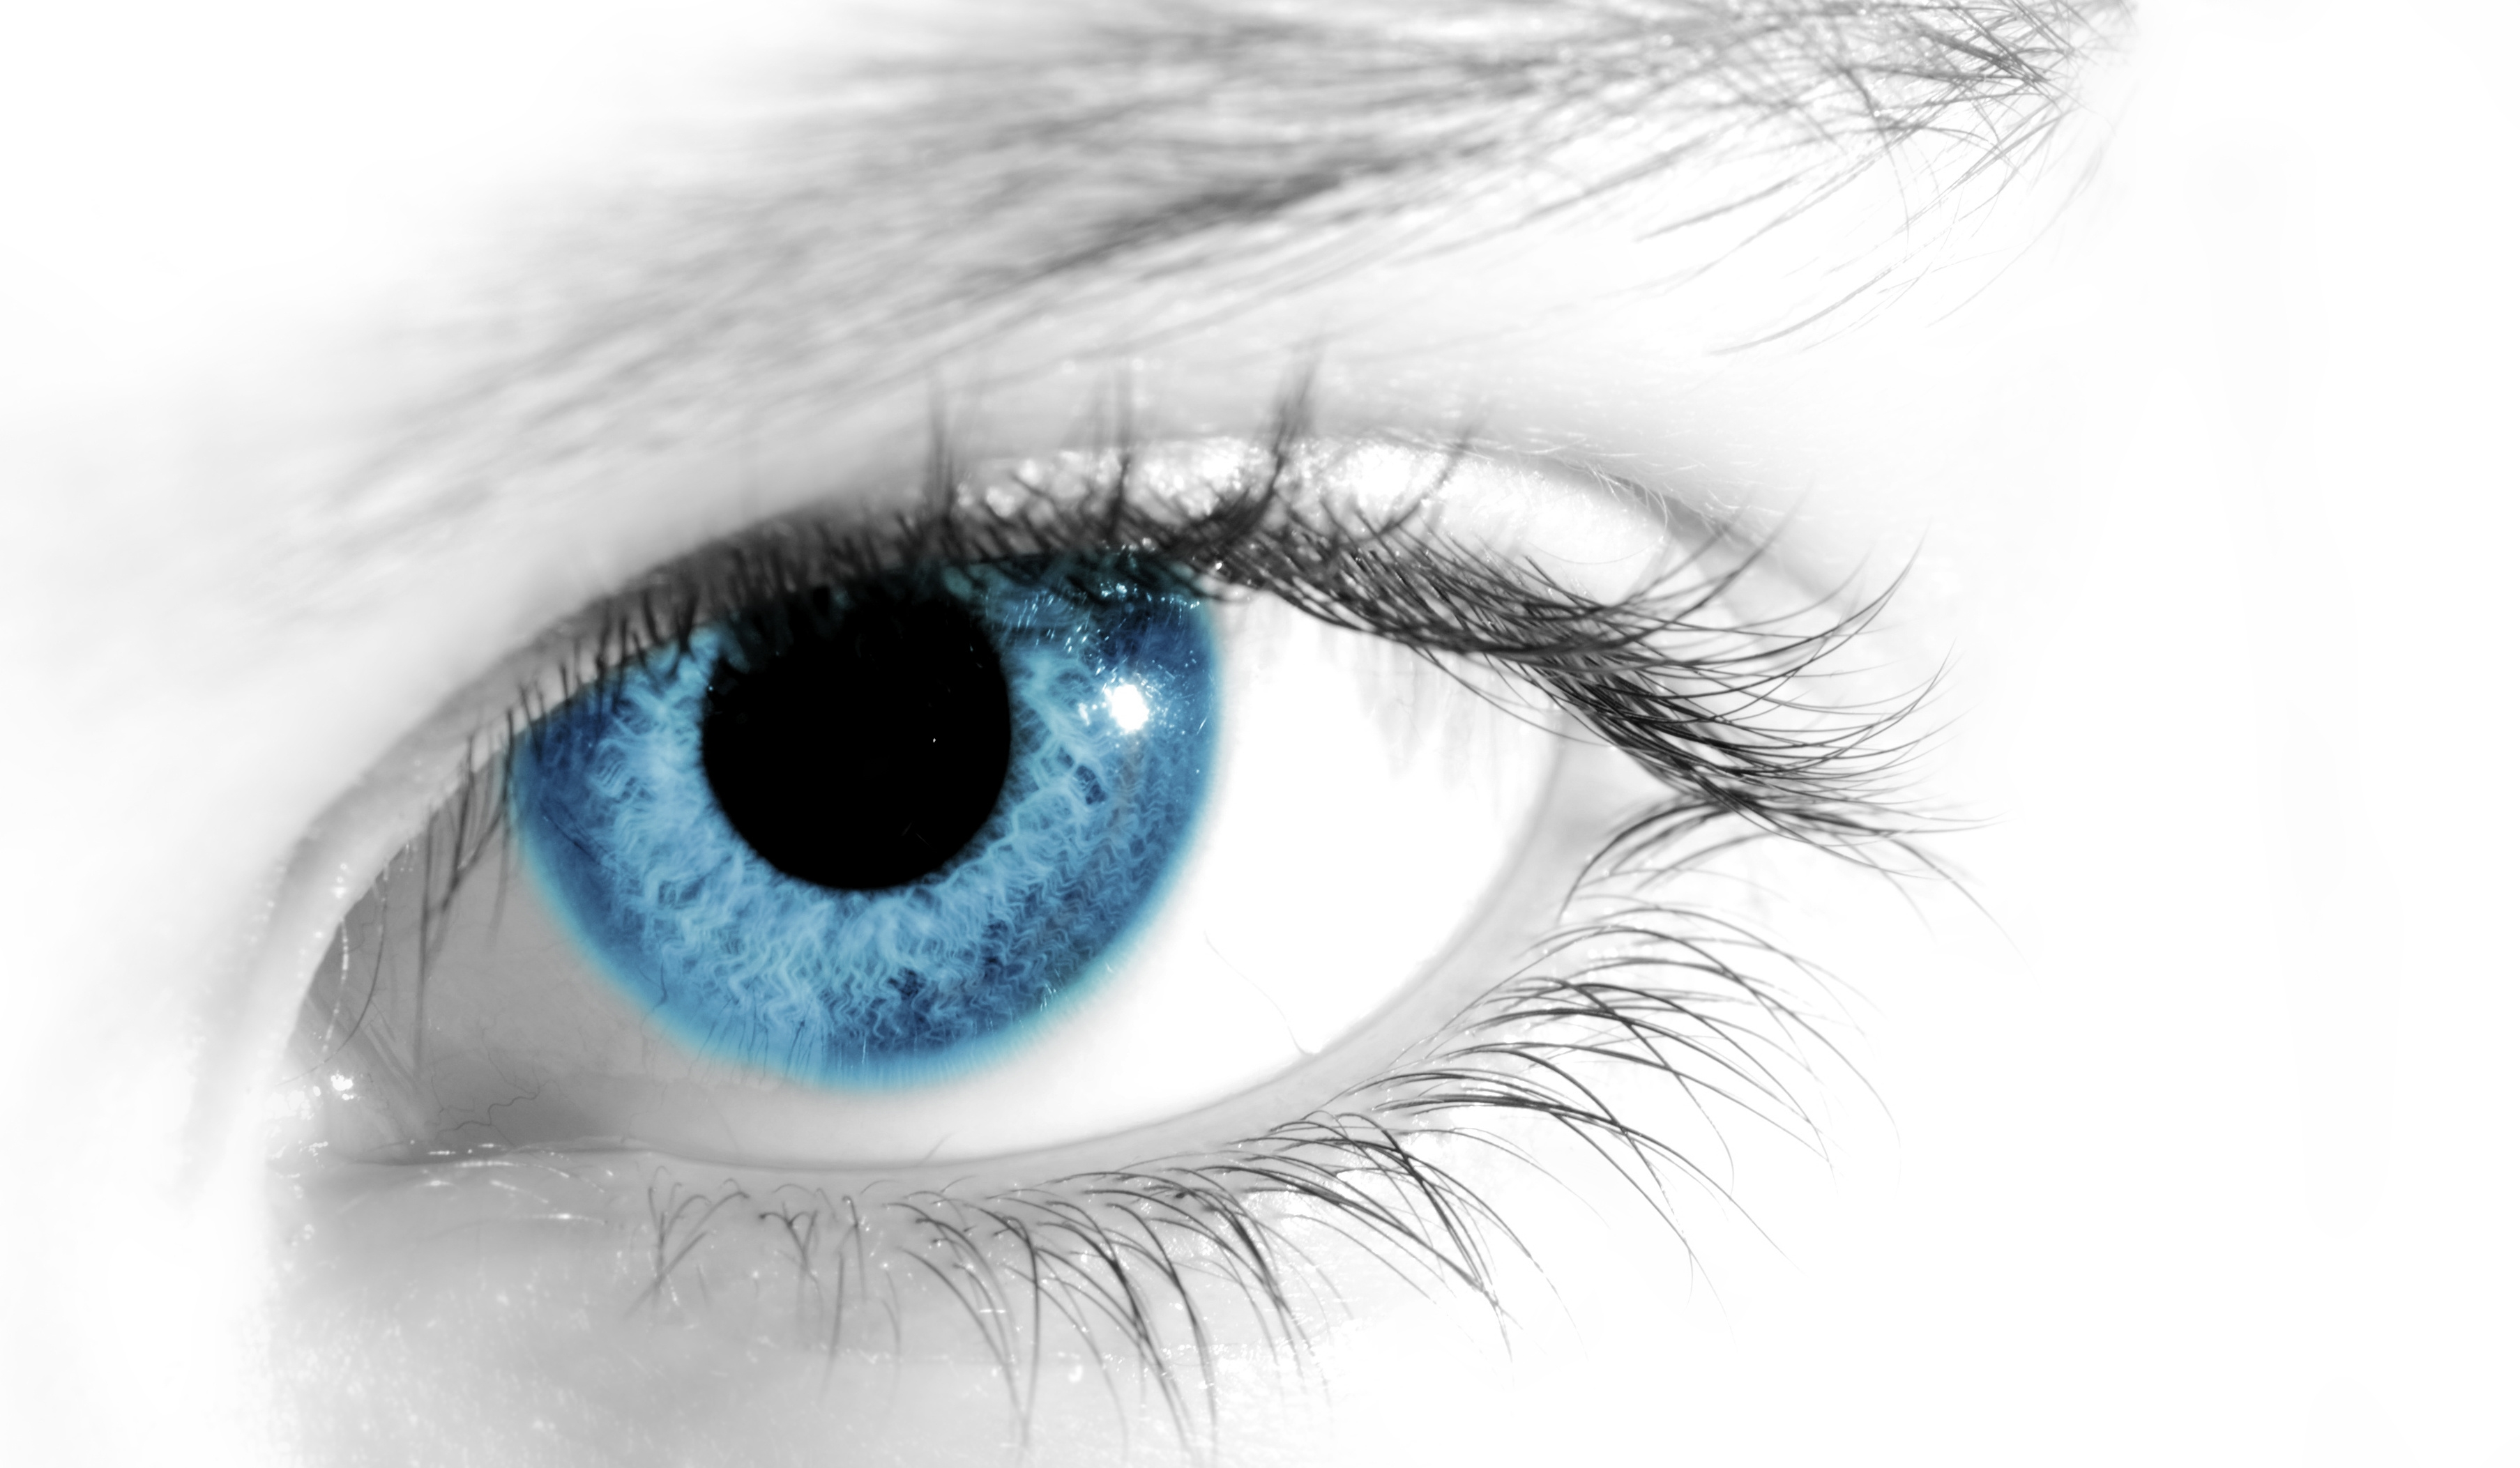 Blue Eye Wallpaper Background 5770 3614x2106   uMadcom 3614x2106